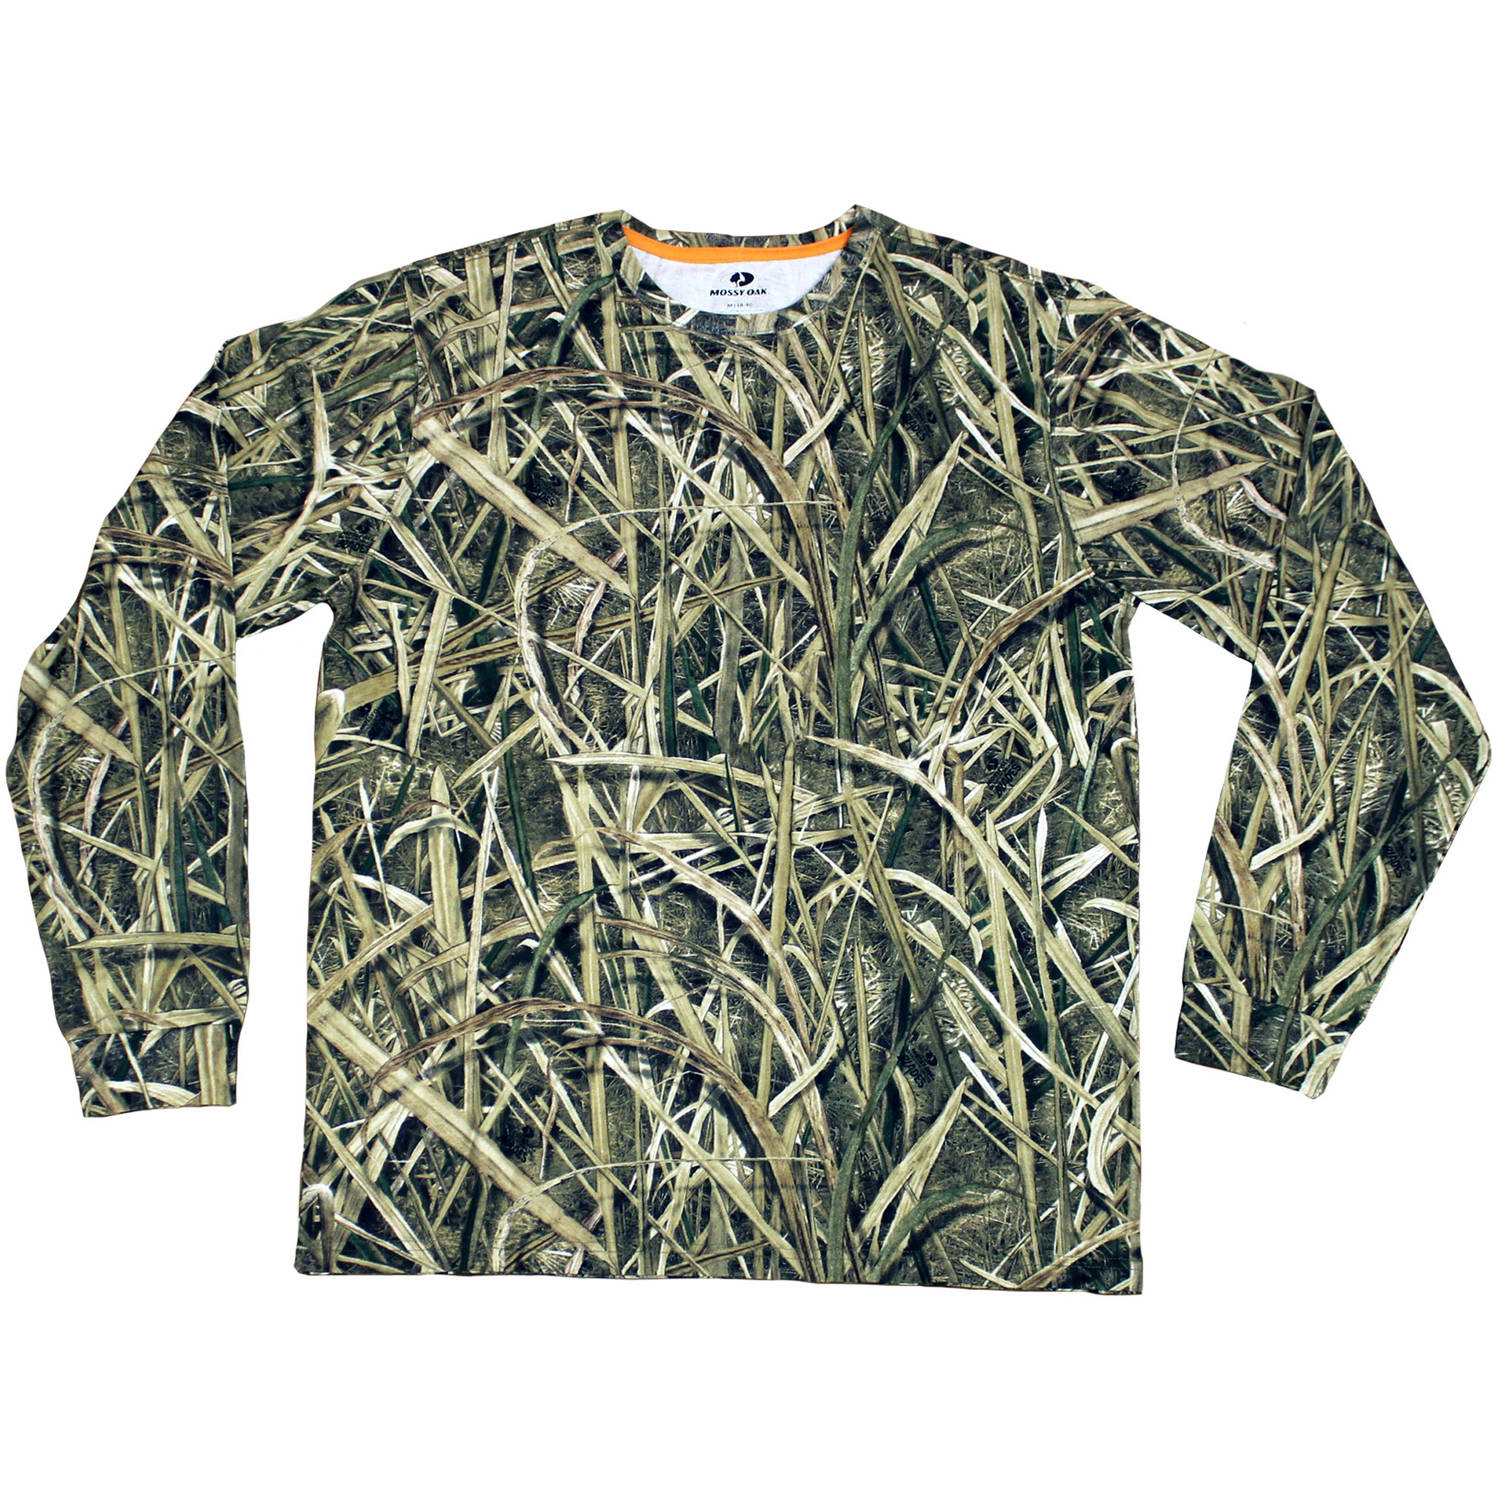 Men's Long Sleeve Camo Tee, Available in Multiple Patterns